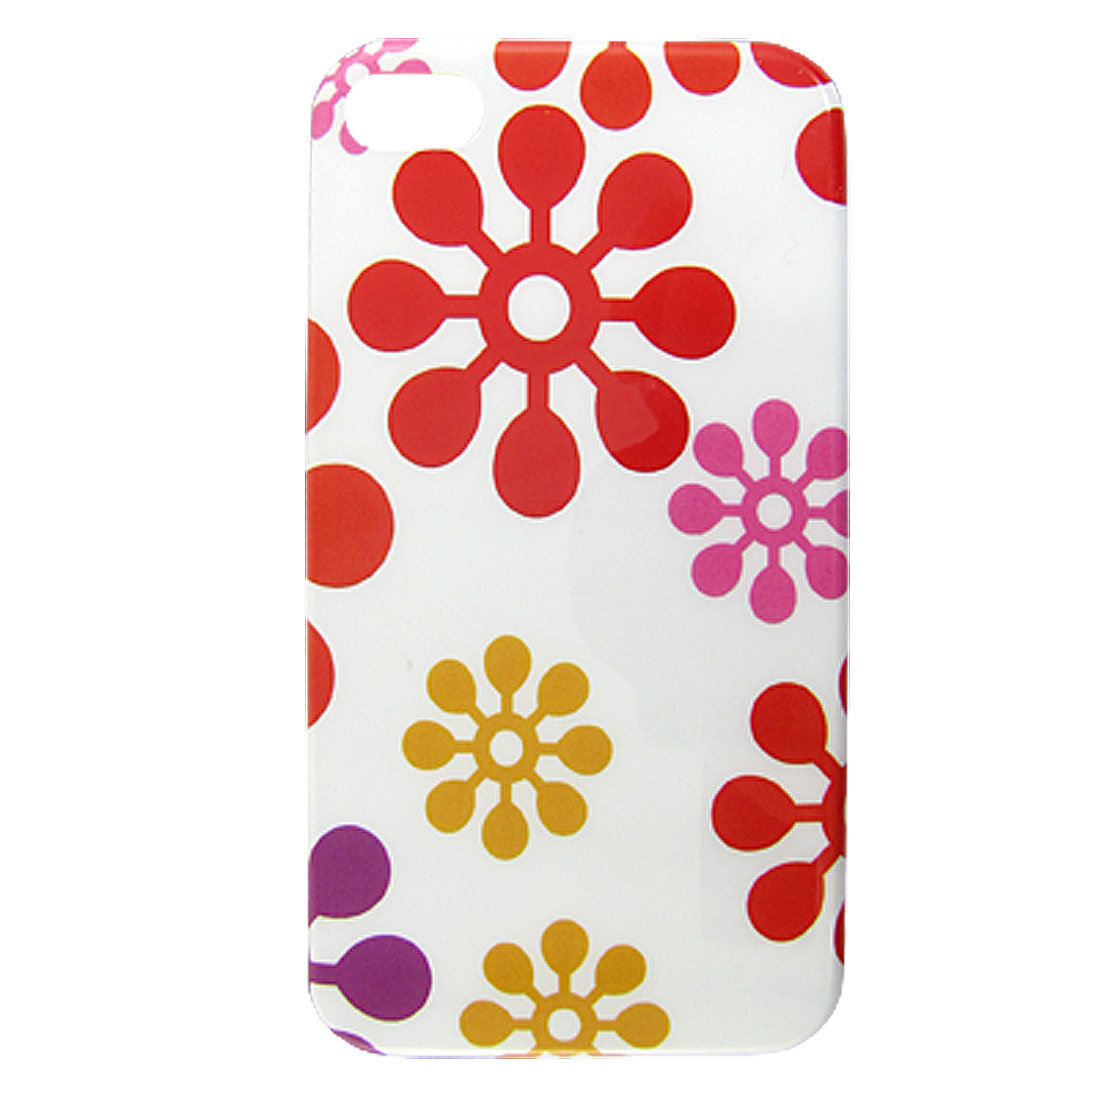 Flower Pattern IMD Hard Plastic Protective Back Case Shell White for iPhone 4 4G 4S